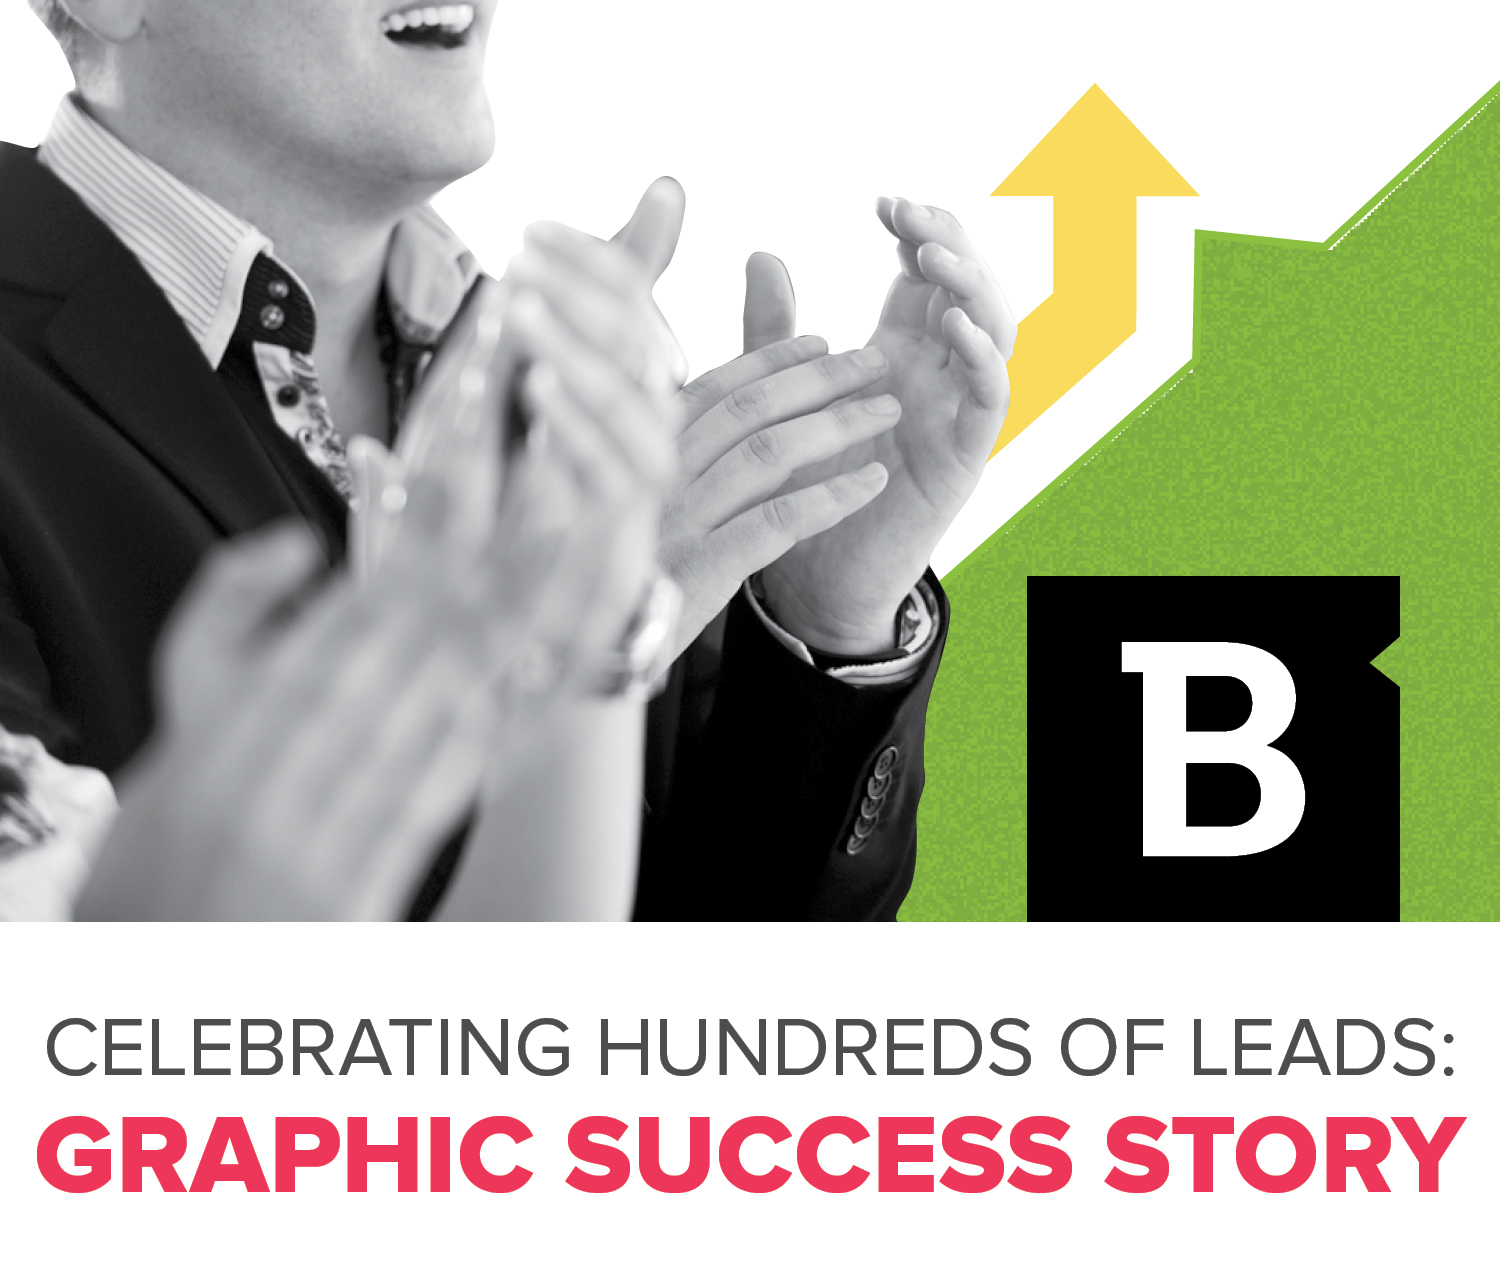 A company generates the most leads ever in a day when it promotes a custom infographic.